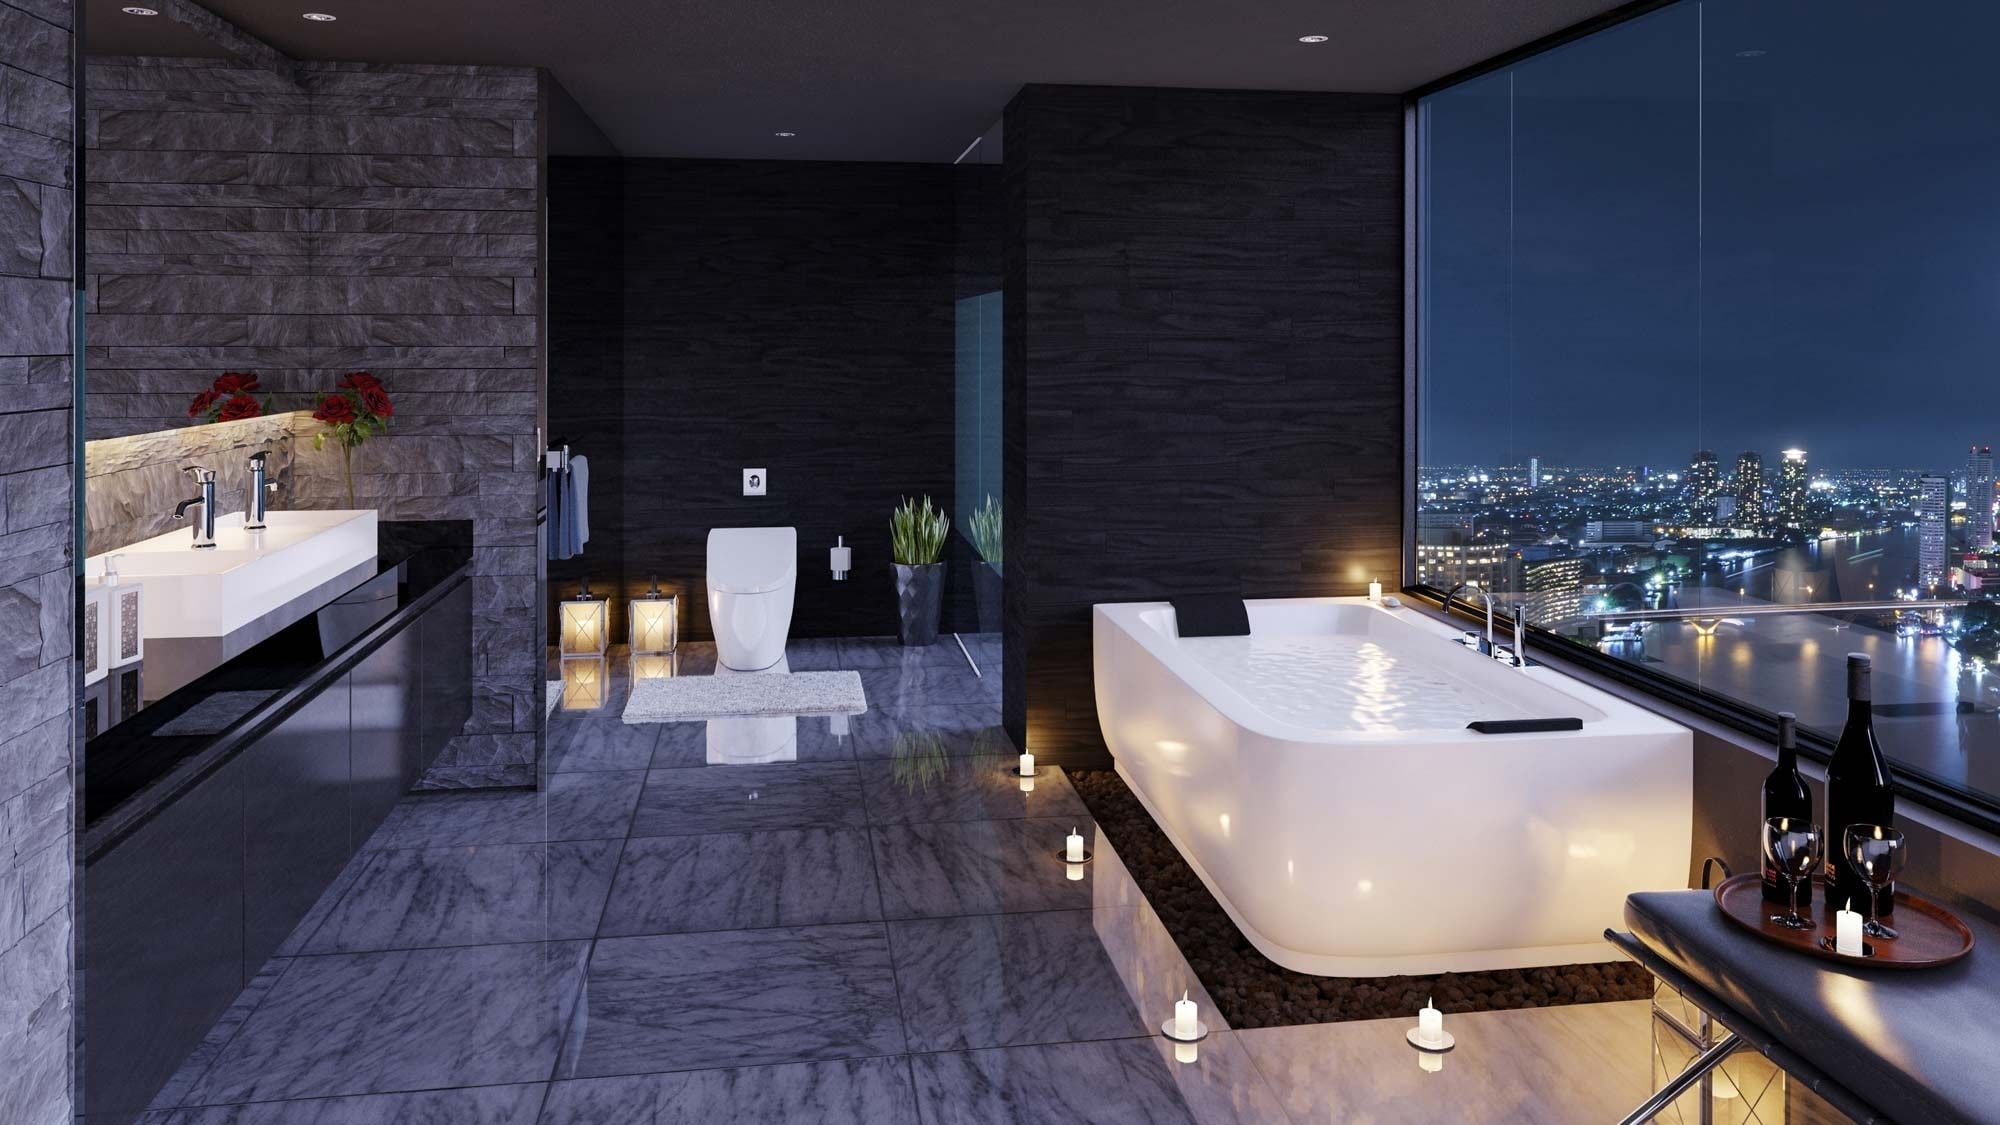 Ultra Luxury Bathroom Inspiration 11 Min